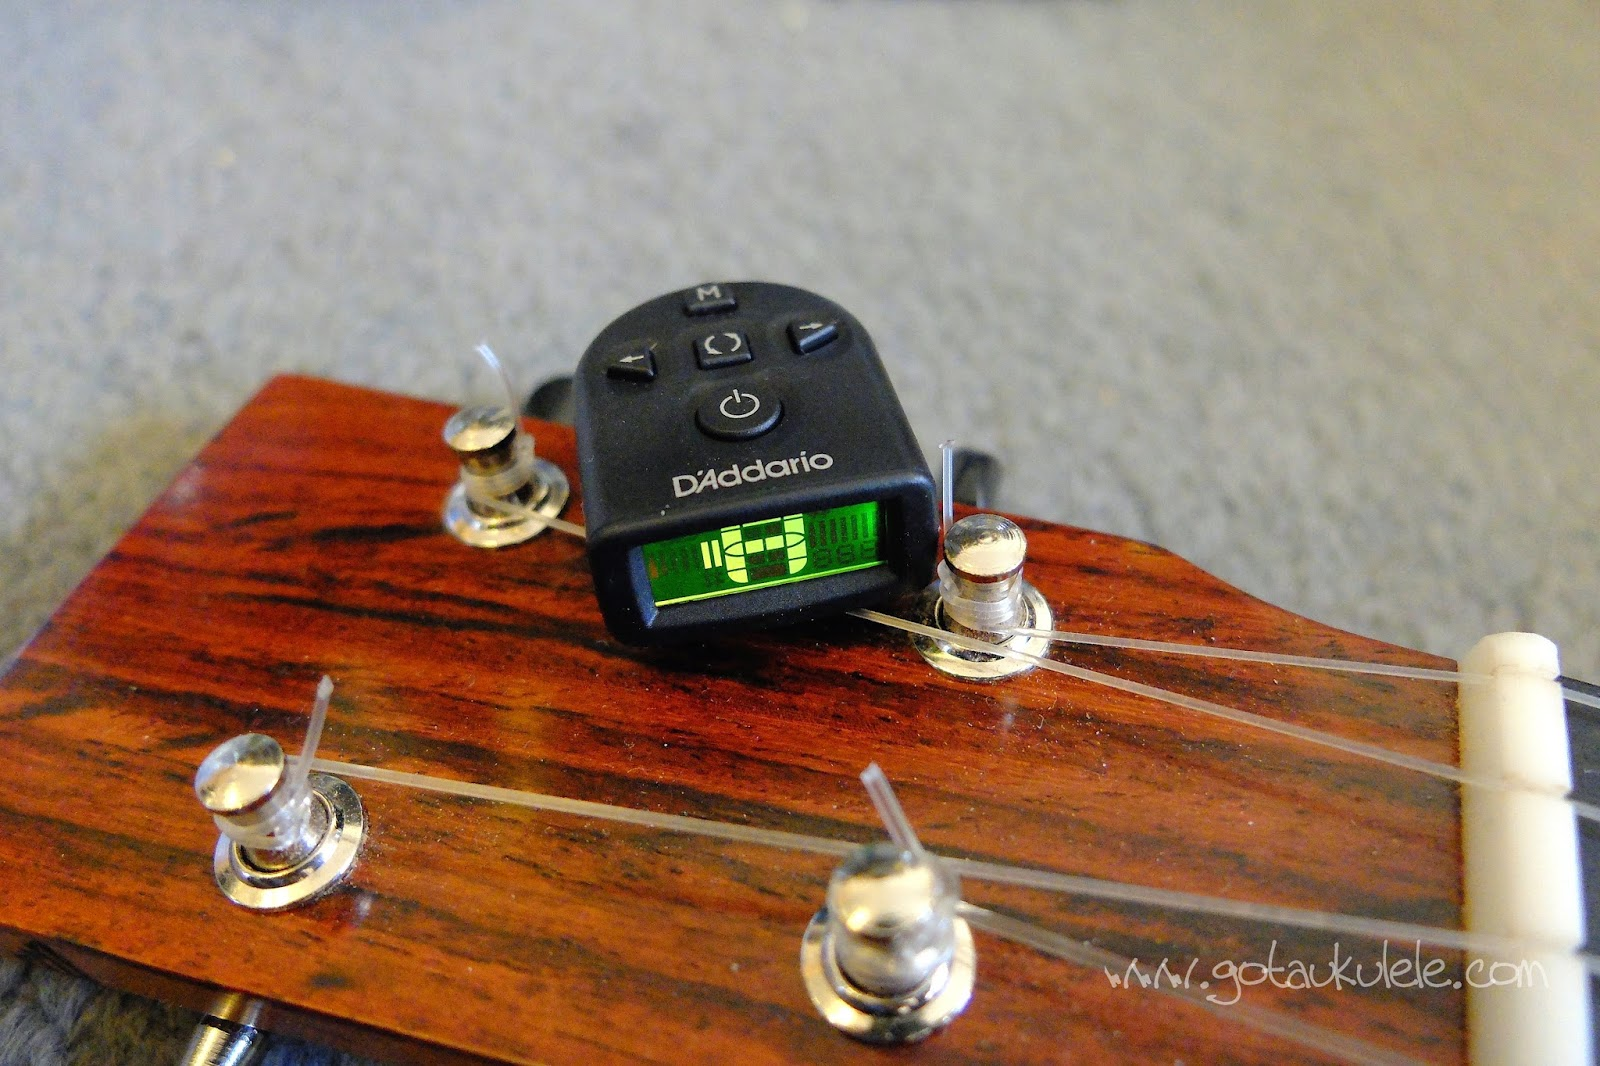 D'Addario Planet Waves Clip On Tuner